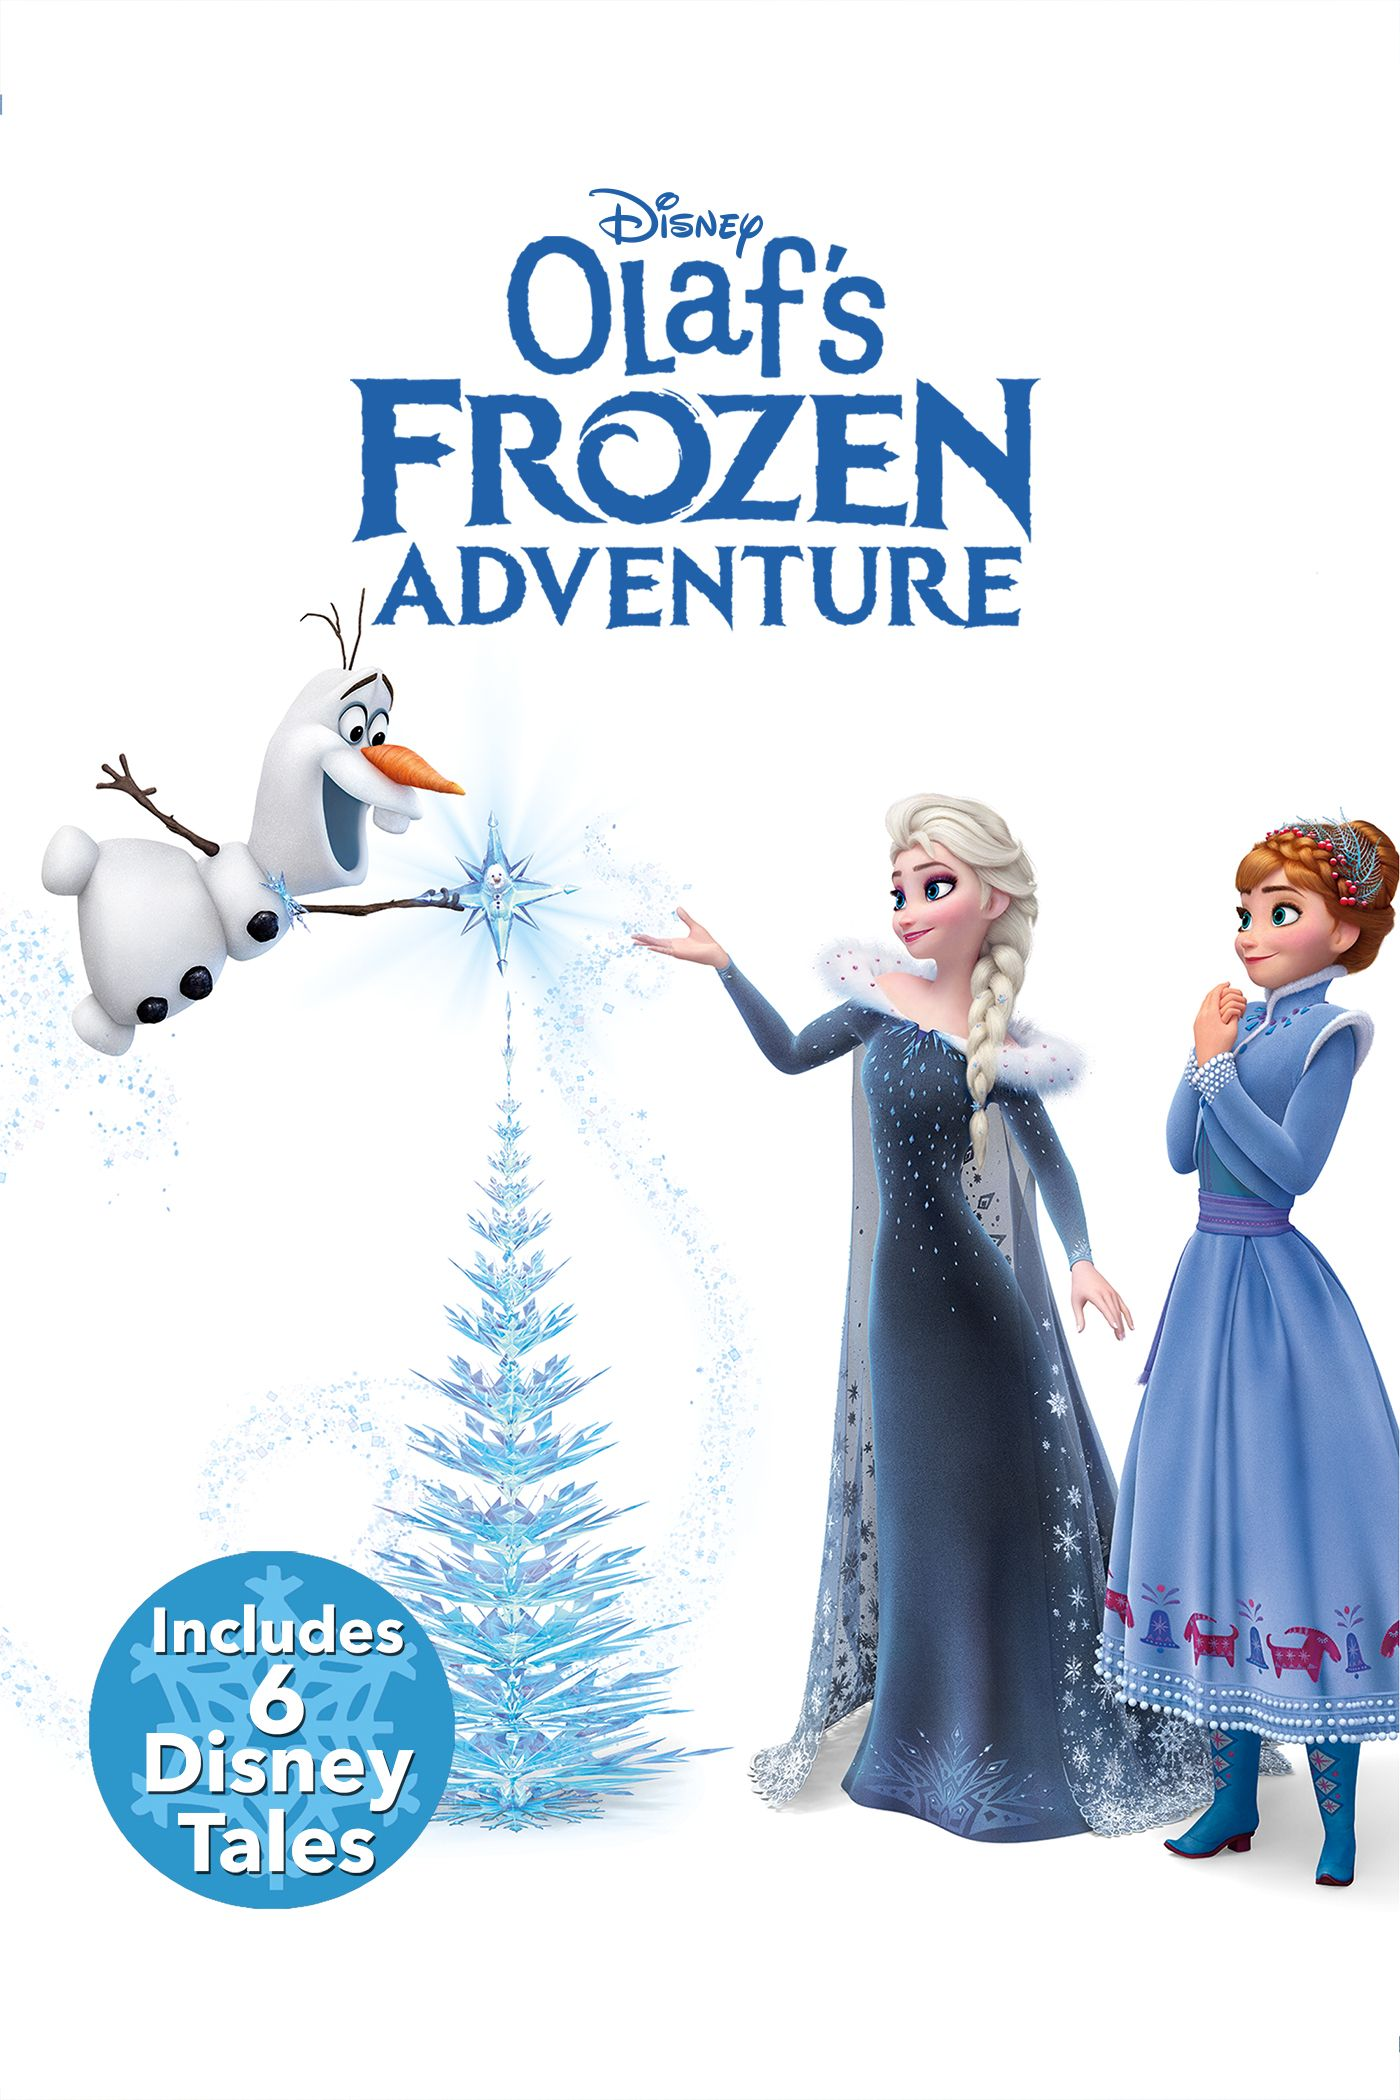 A Princess For Christmas Mtrjm.Olaf S Frozen Adventure Plus 6 Disney Tales Full Movie